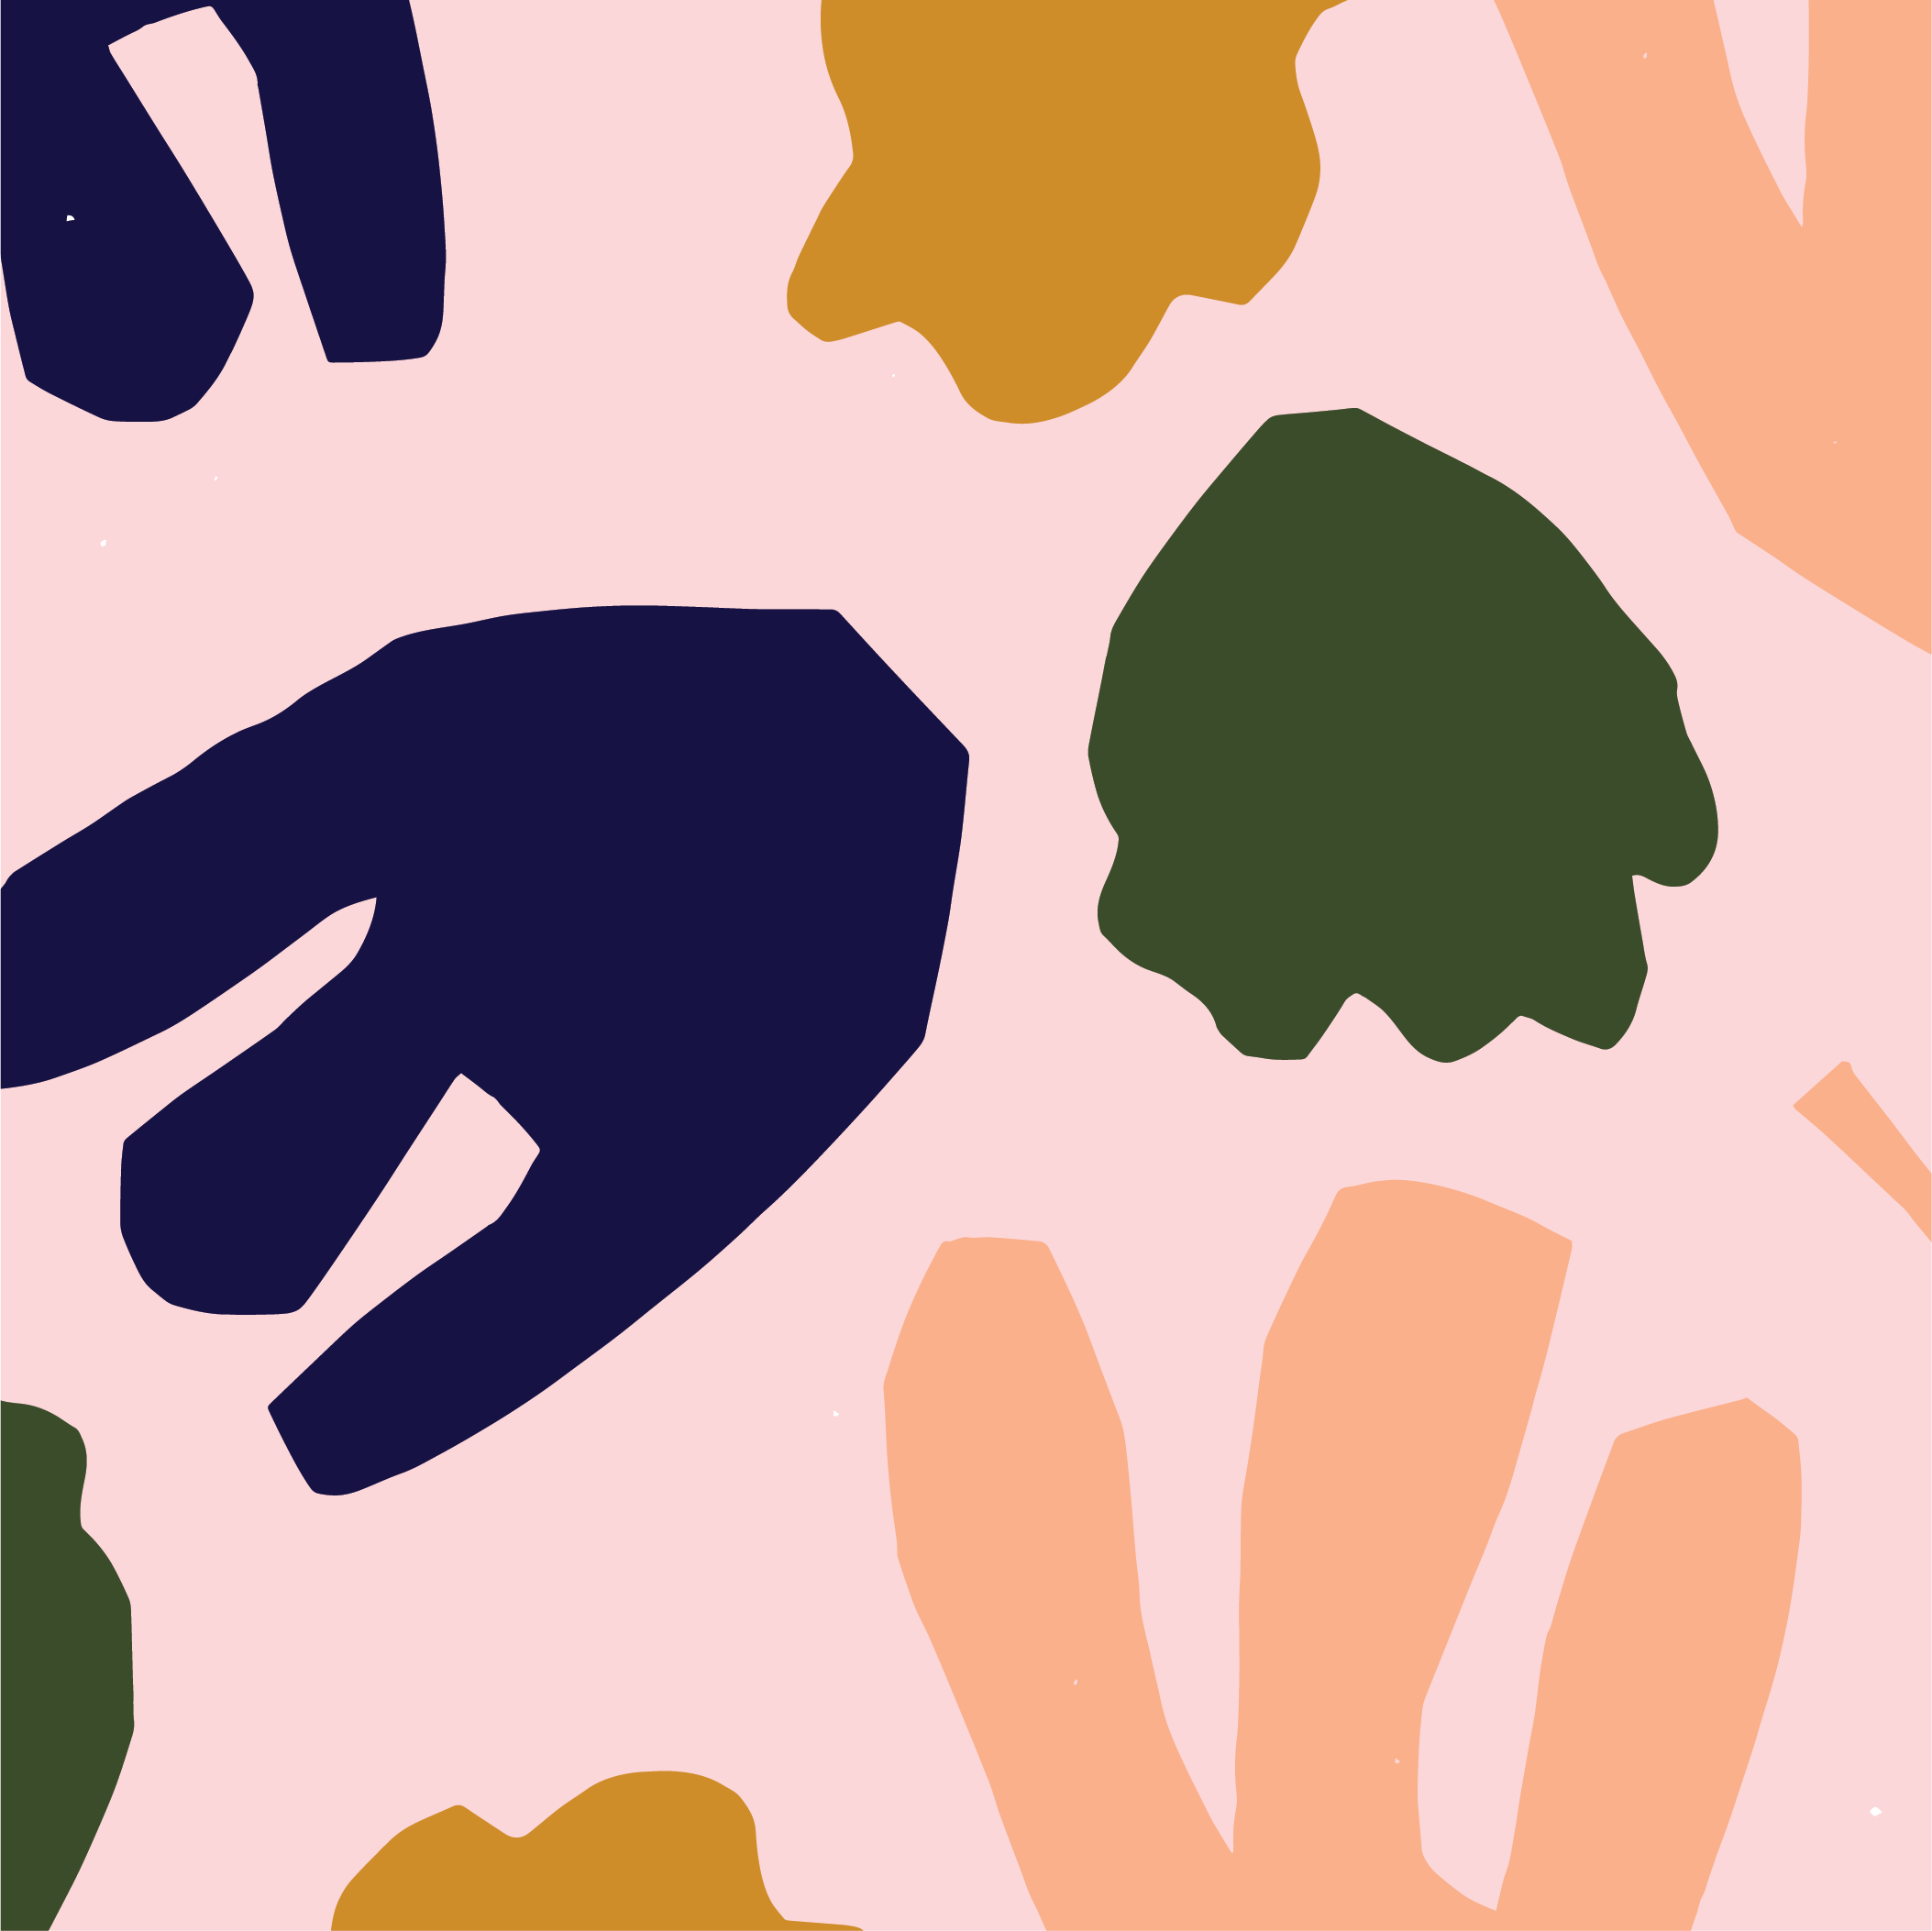 181015_4.png